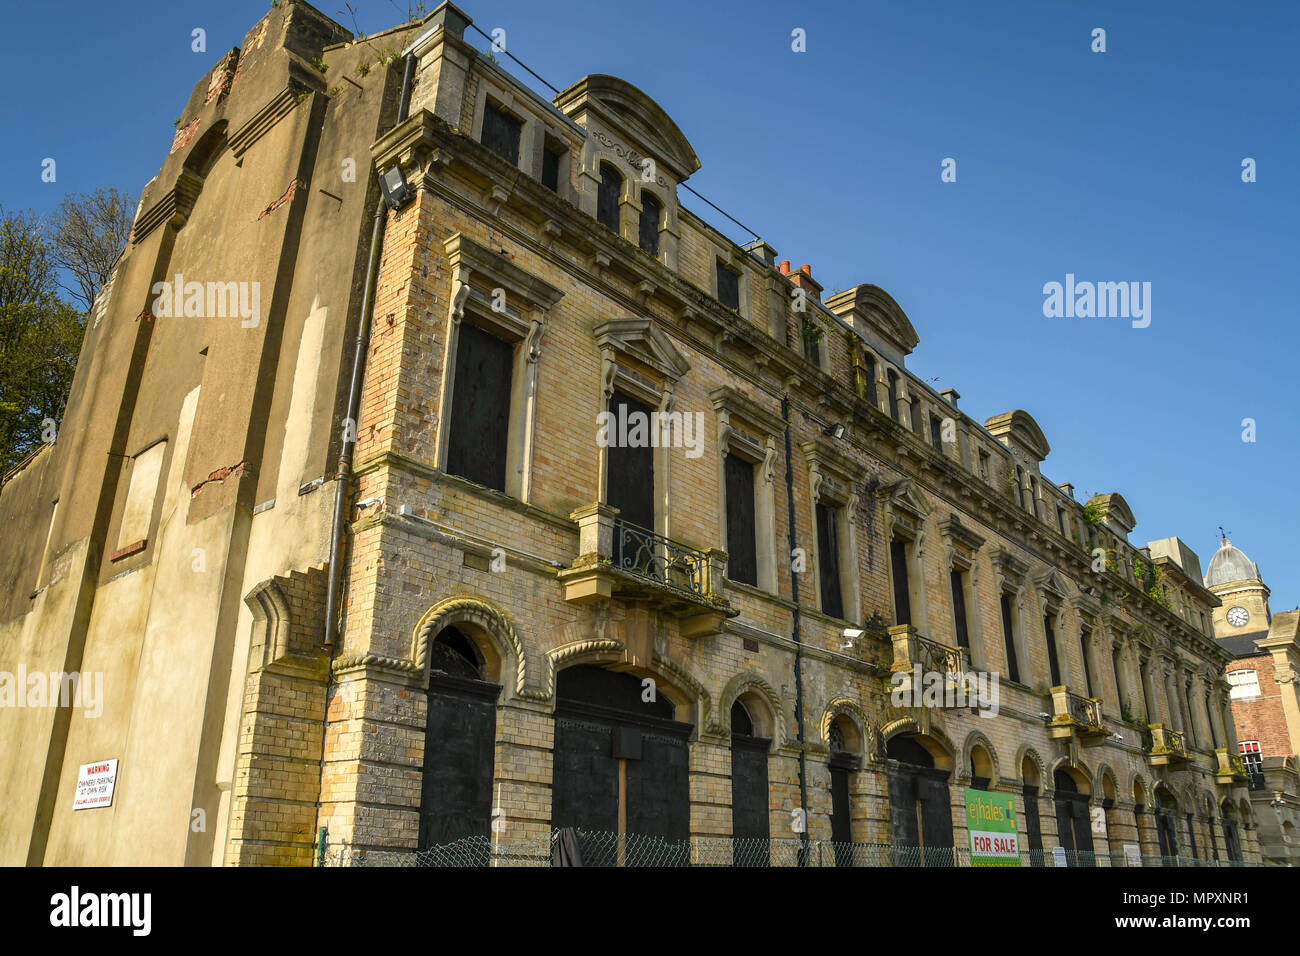 The derelict Marine Buildings near Penarth Marina and the Cardiff Bay barrage. It is Grade II listed. - Stock Image